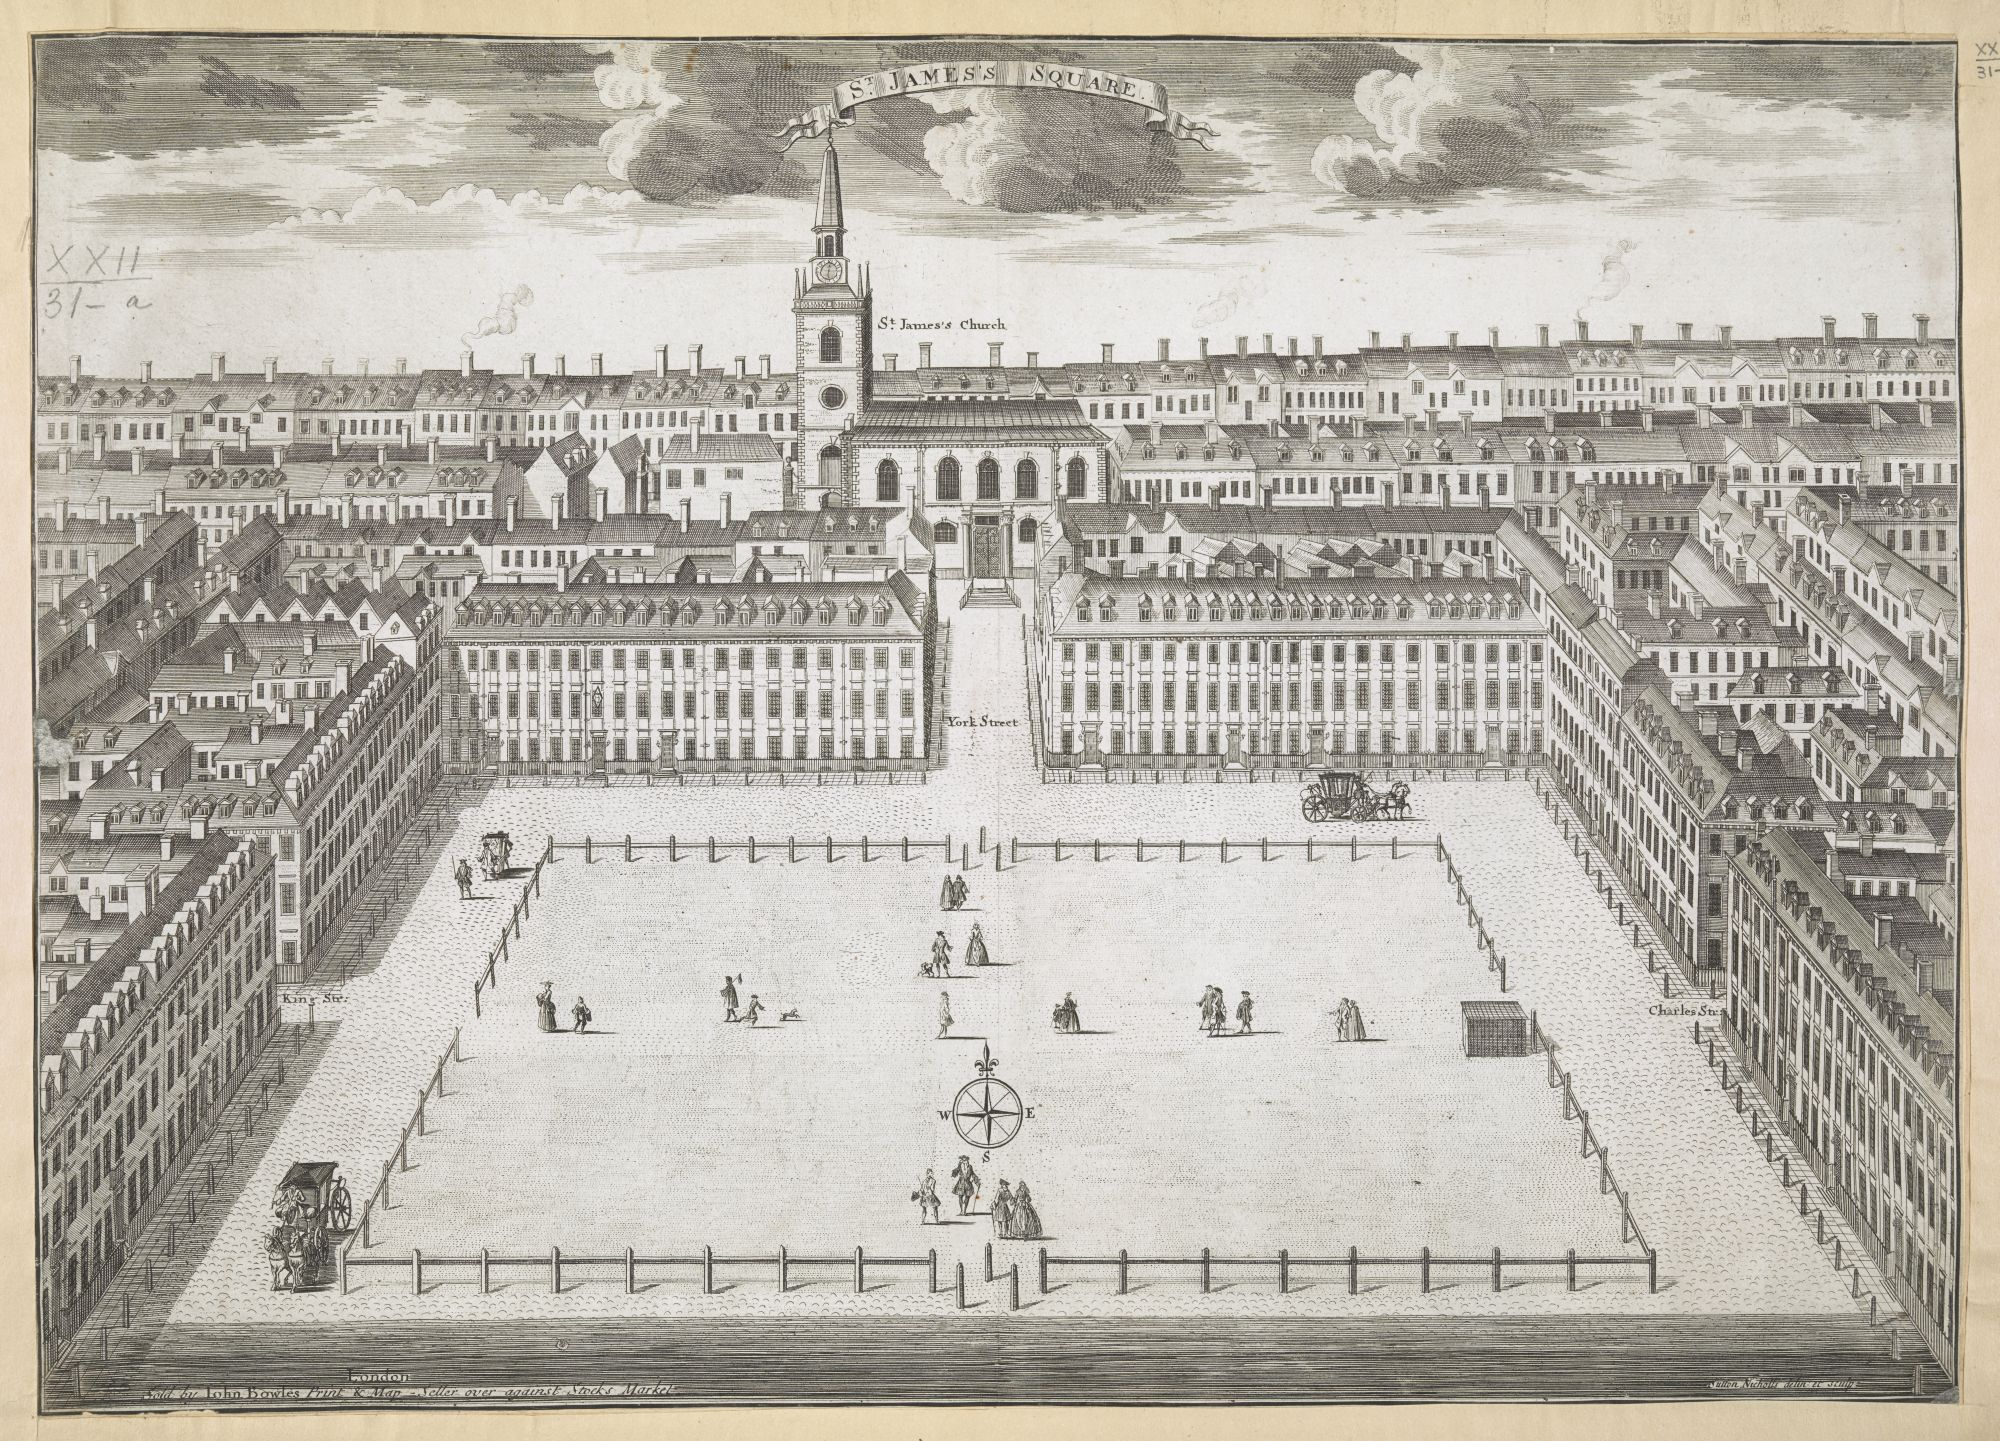 St James' Square, by Sutton Nicholls.